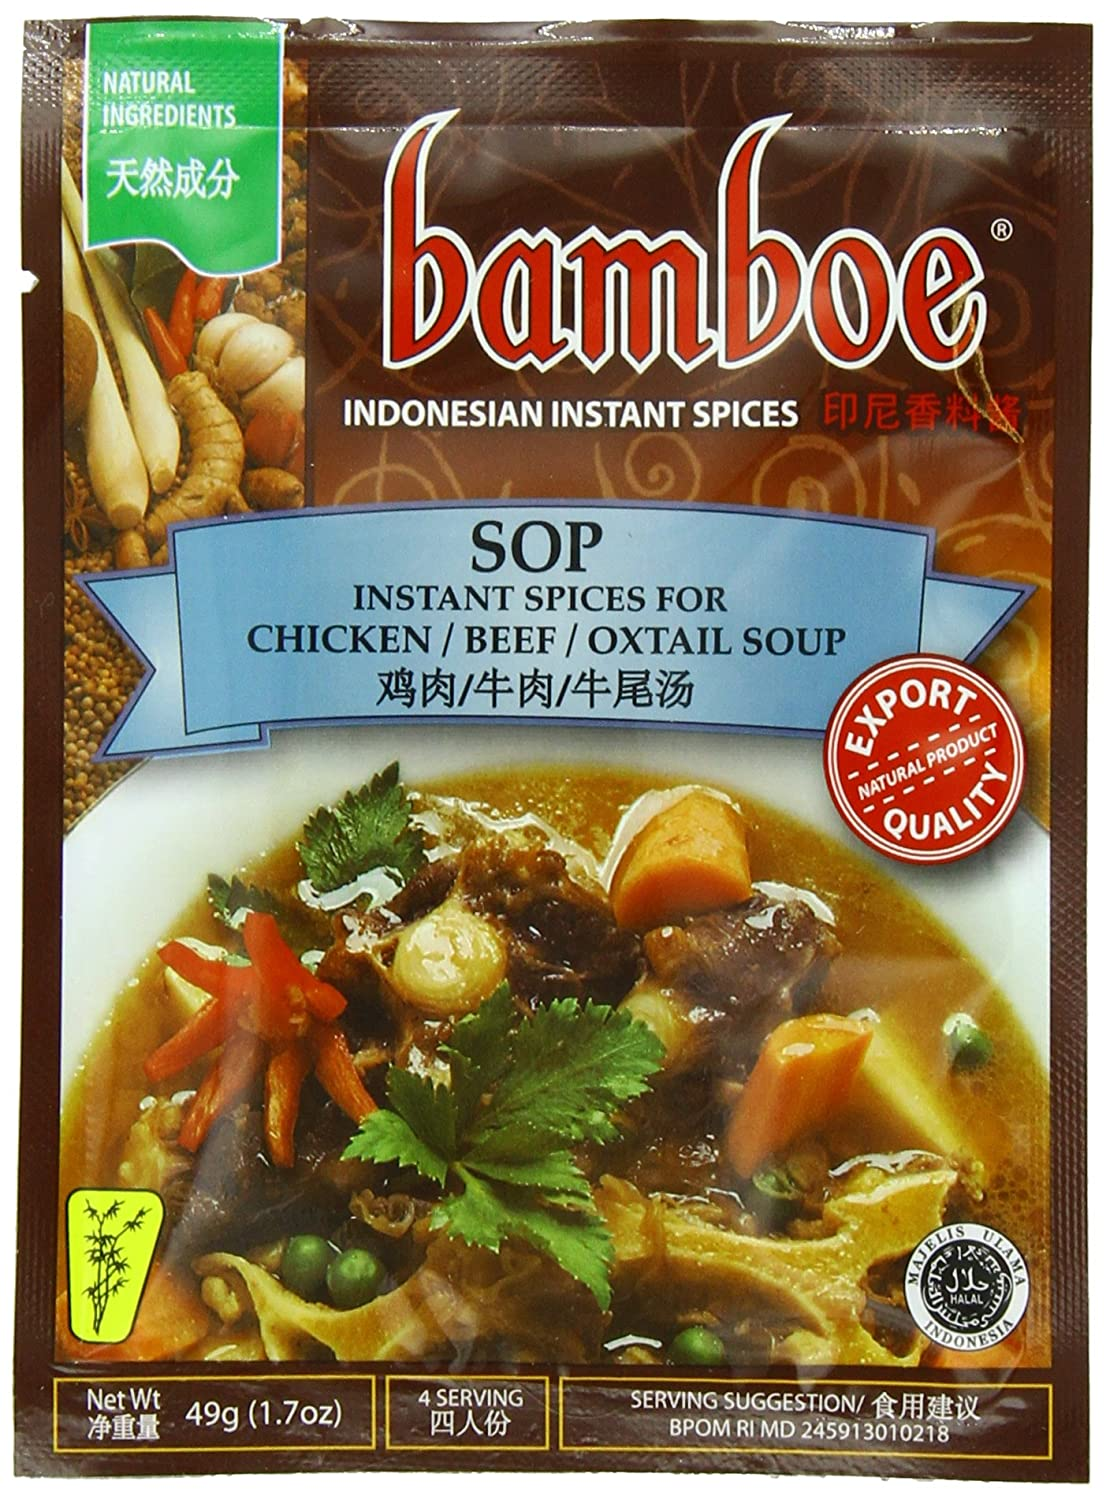 Bamboe Sop Chicken Beef and Oxtail 12 5% Long Beach Mall OFF of 1.7-Ounce Soup Pack